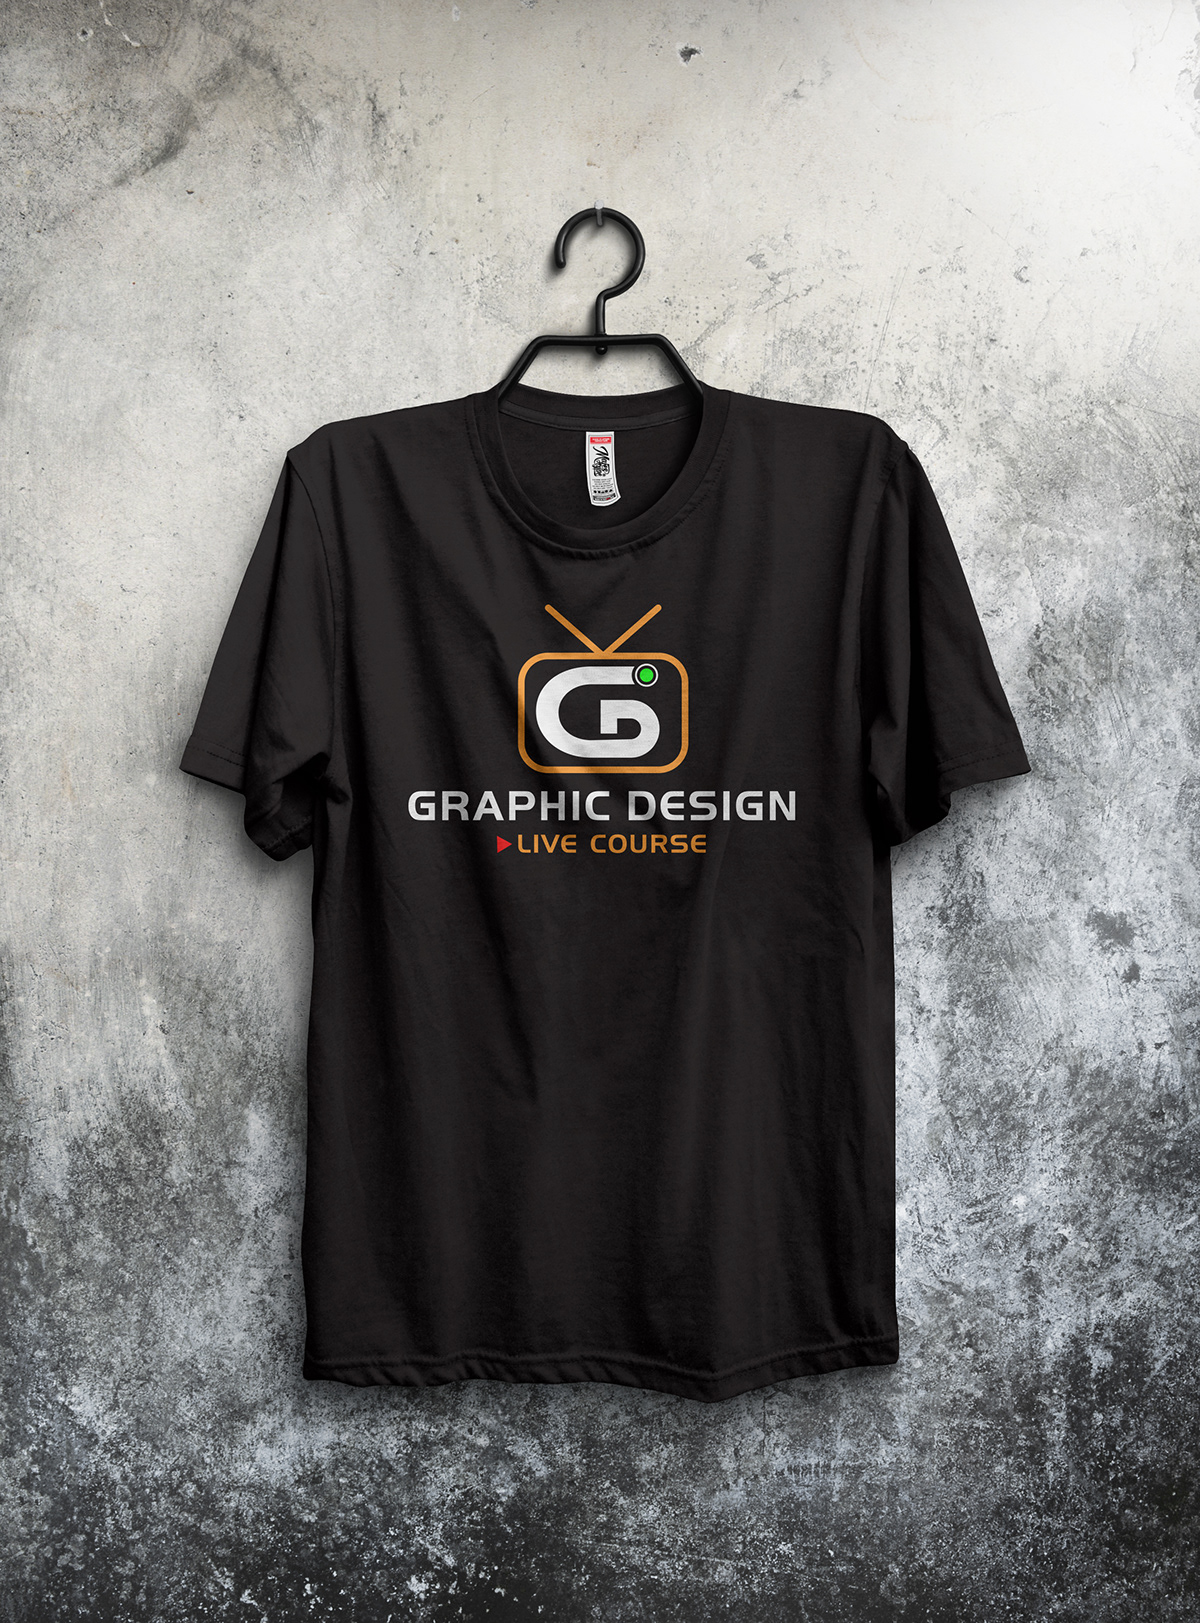 T Shirt Mockup Free Download On Student Show